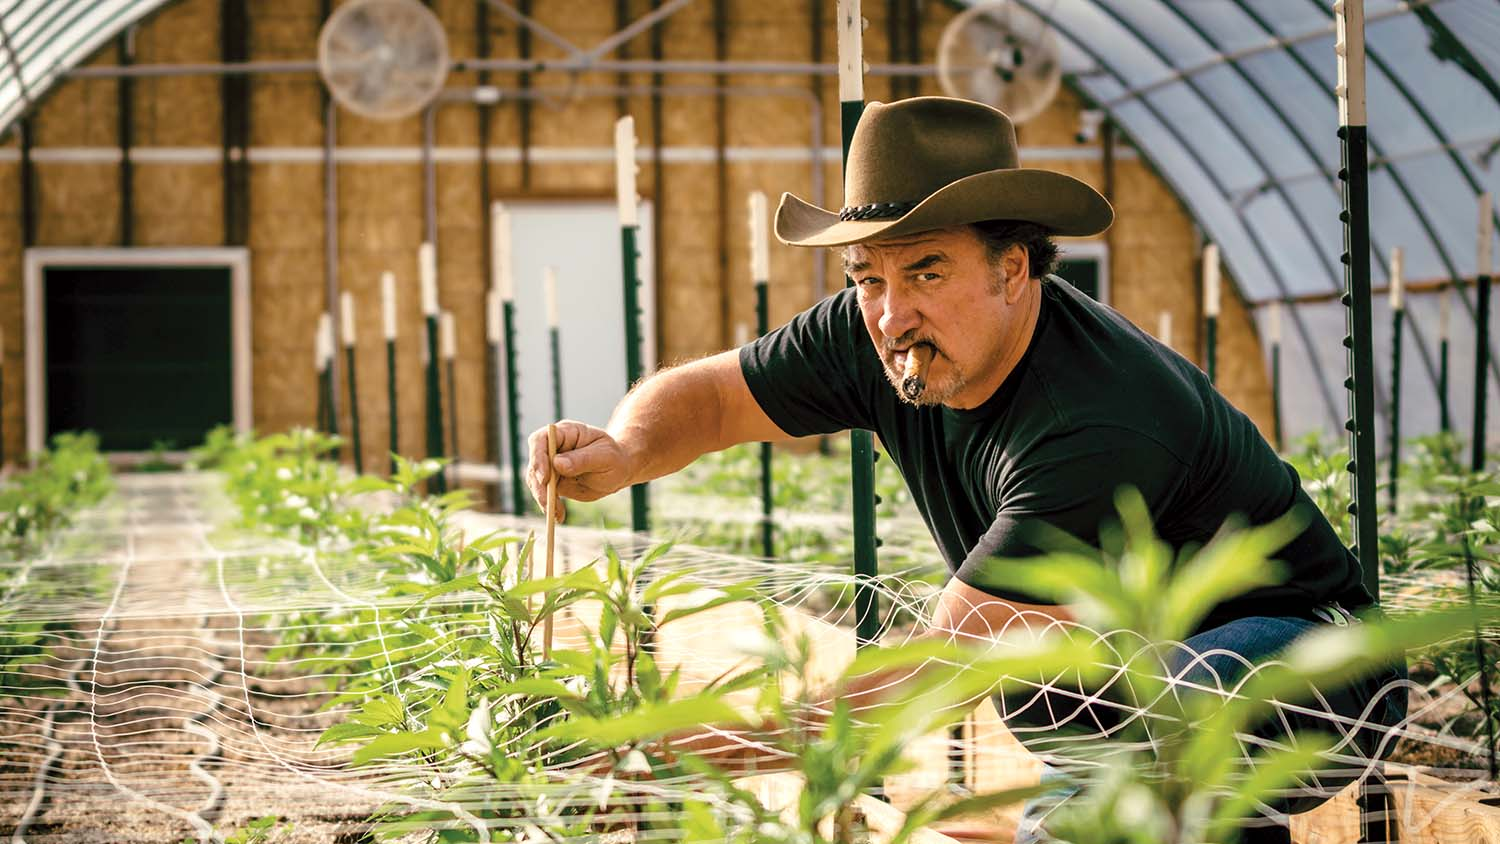 Naked girls in a pot farm Why Jim Belushi Left Hollywood To Launch A Pot Farm The Hollywood Reporter